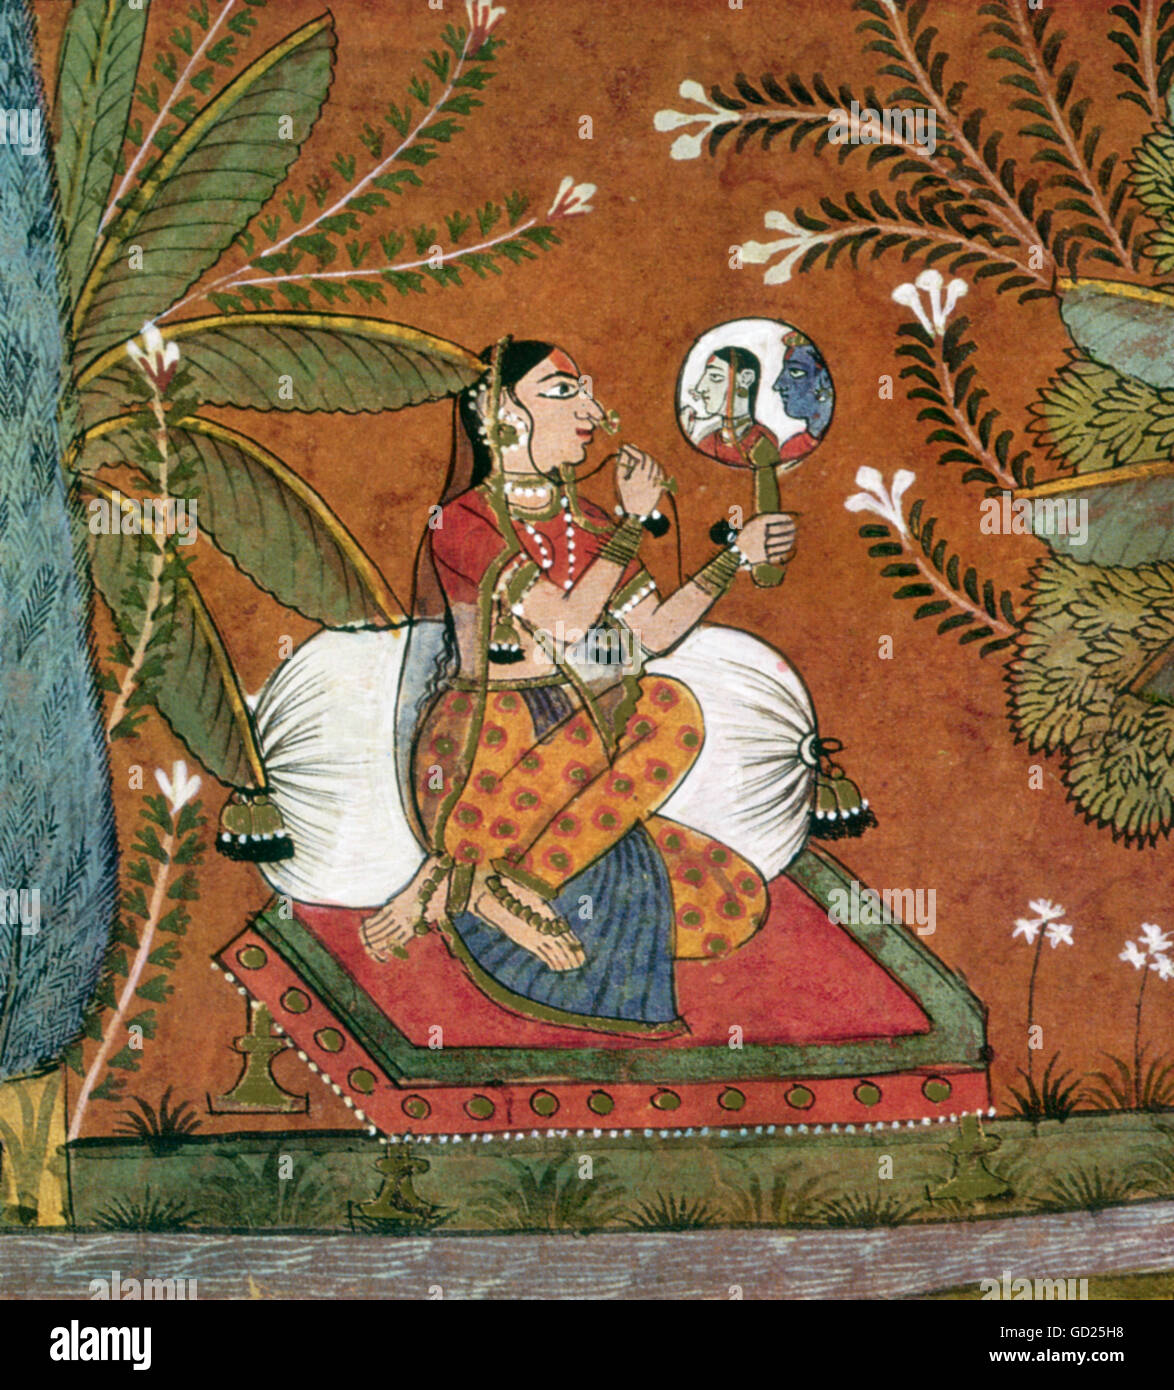 Fine Arts India Radha Is Looking Into A Hand Mirror Were She Is